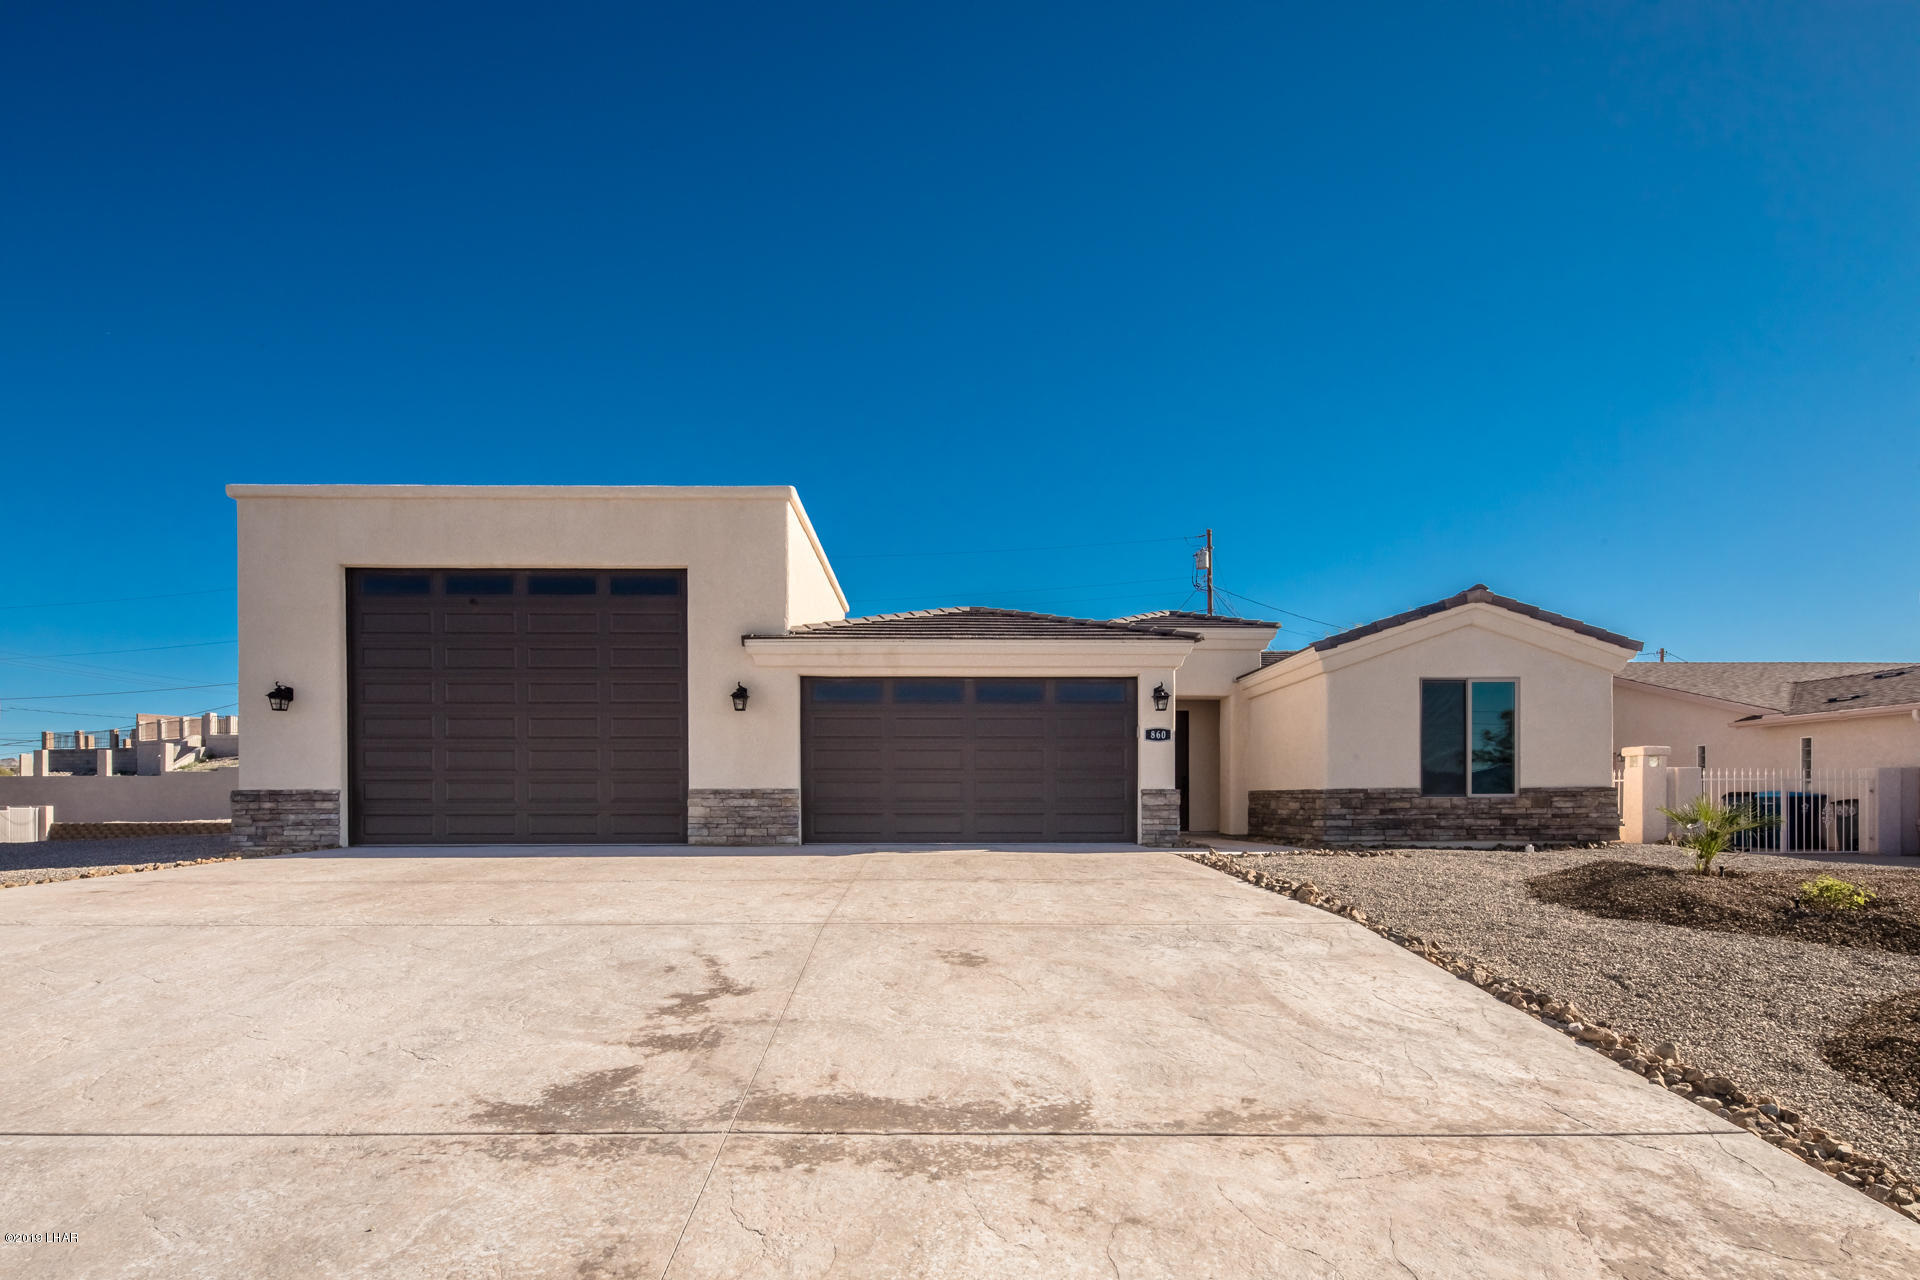 Photo of 3490 Kiowa Blvd S, Lake Havasu City, AZ 86404